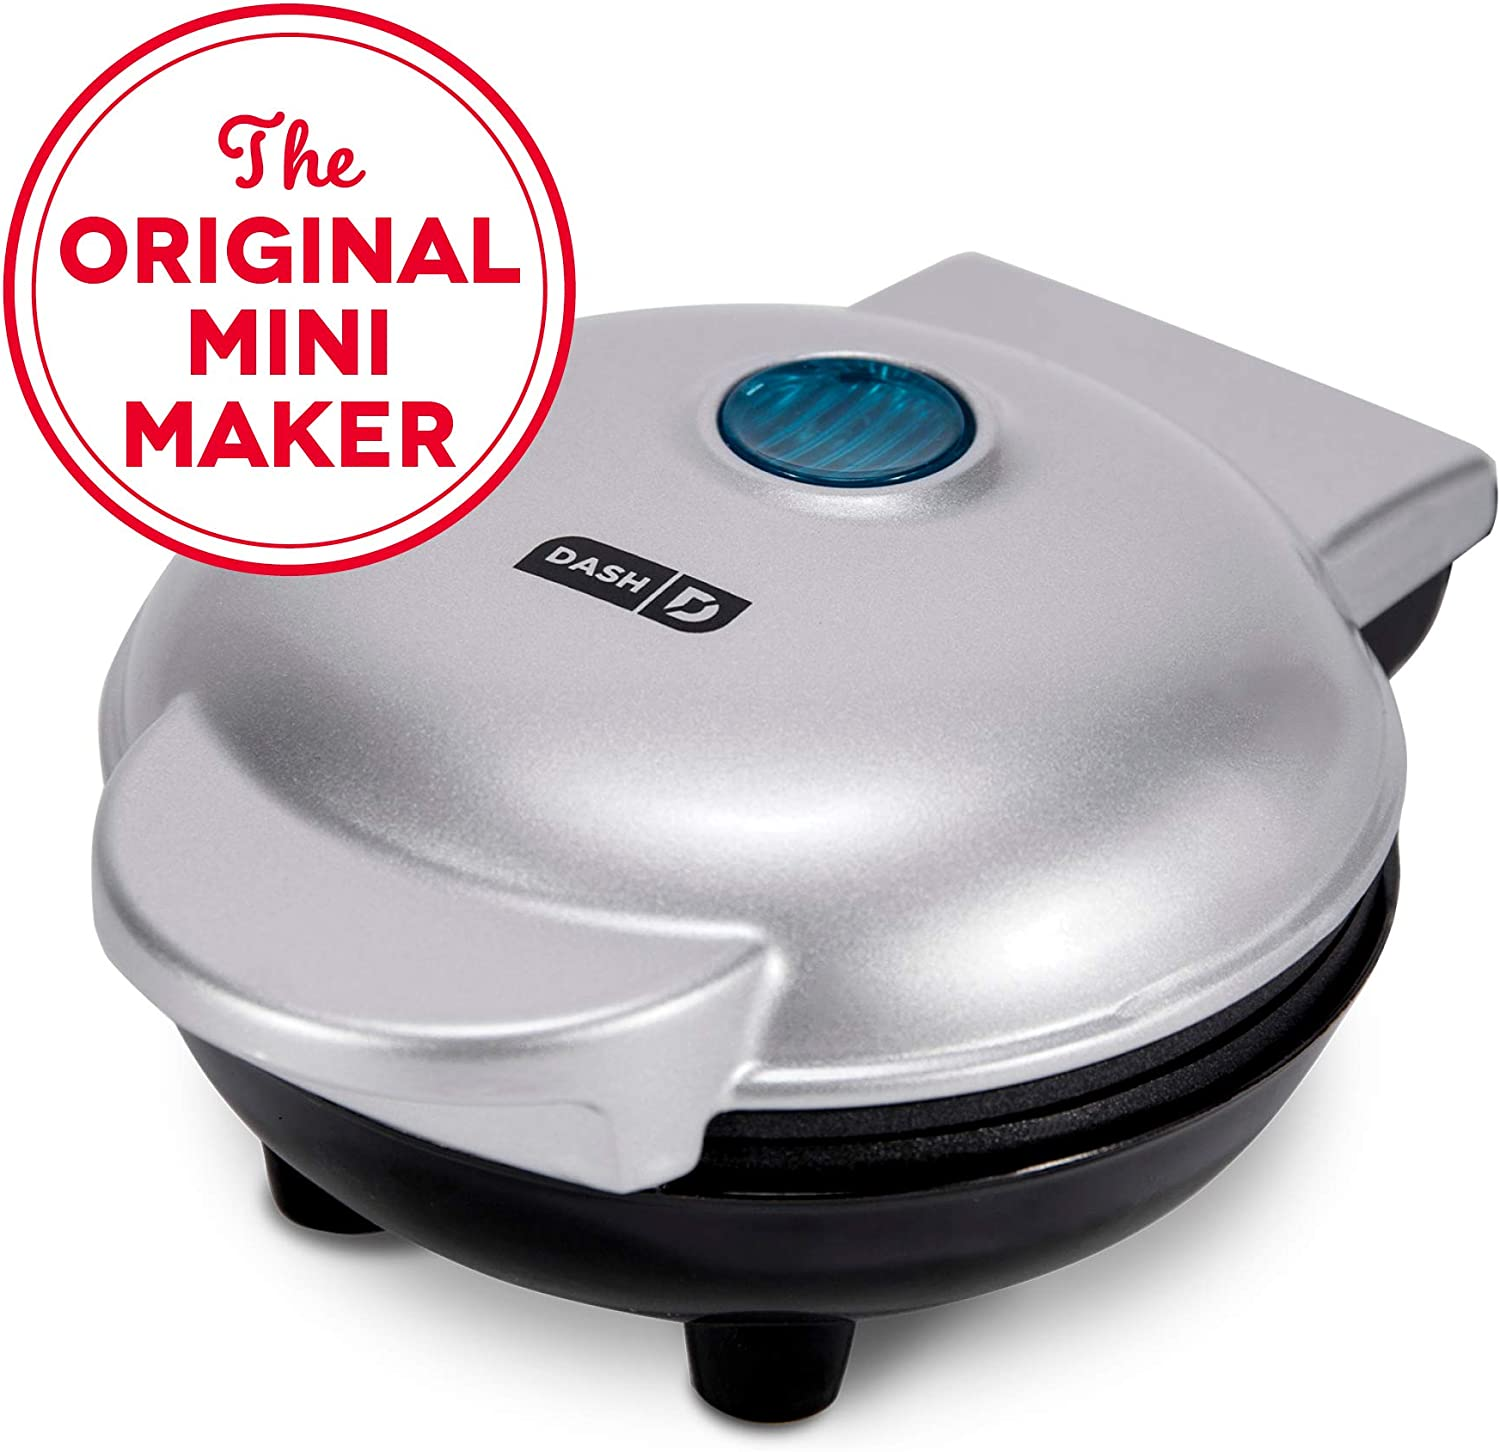 Dash DMS001SL Mini Maker Electric Round Griddle for Individual Pancakes, Cookies